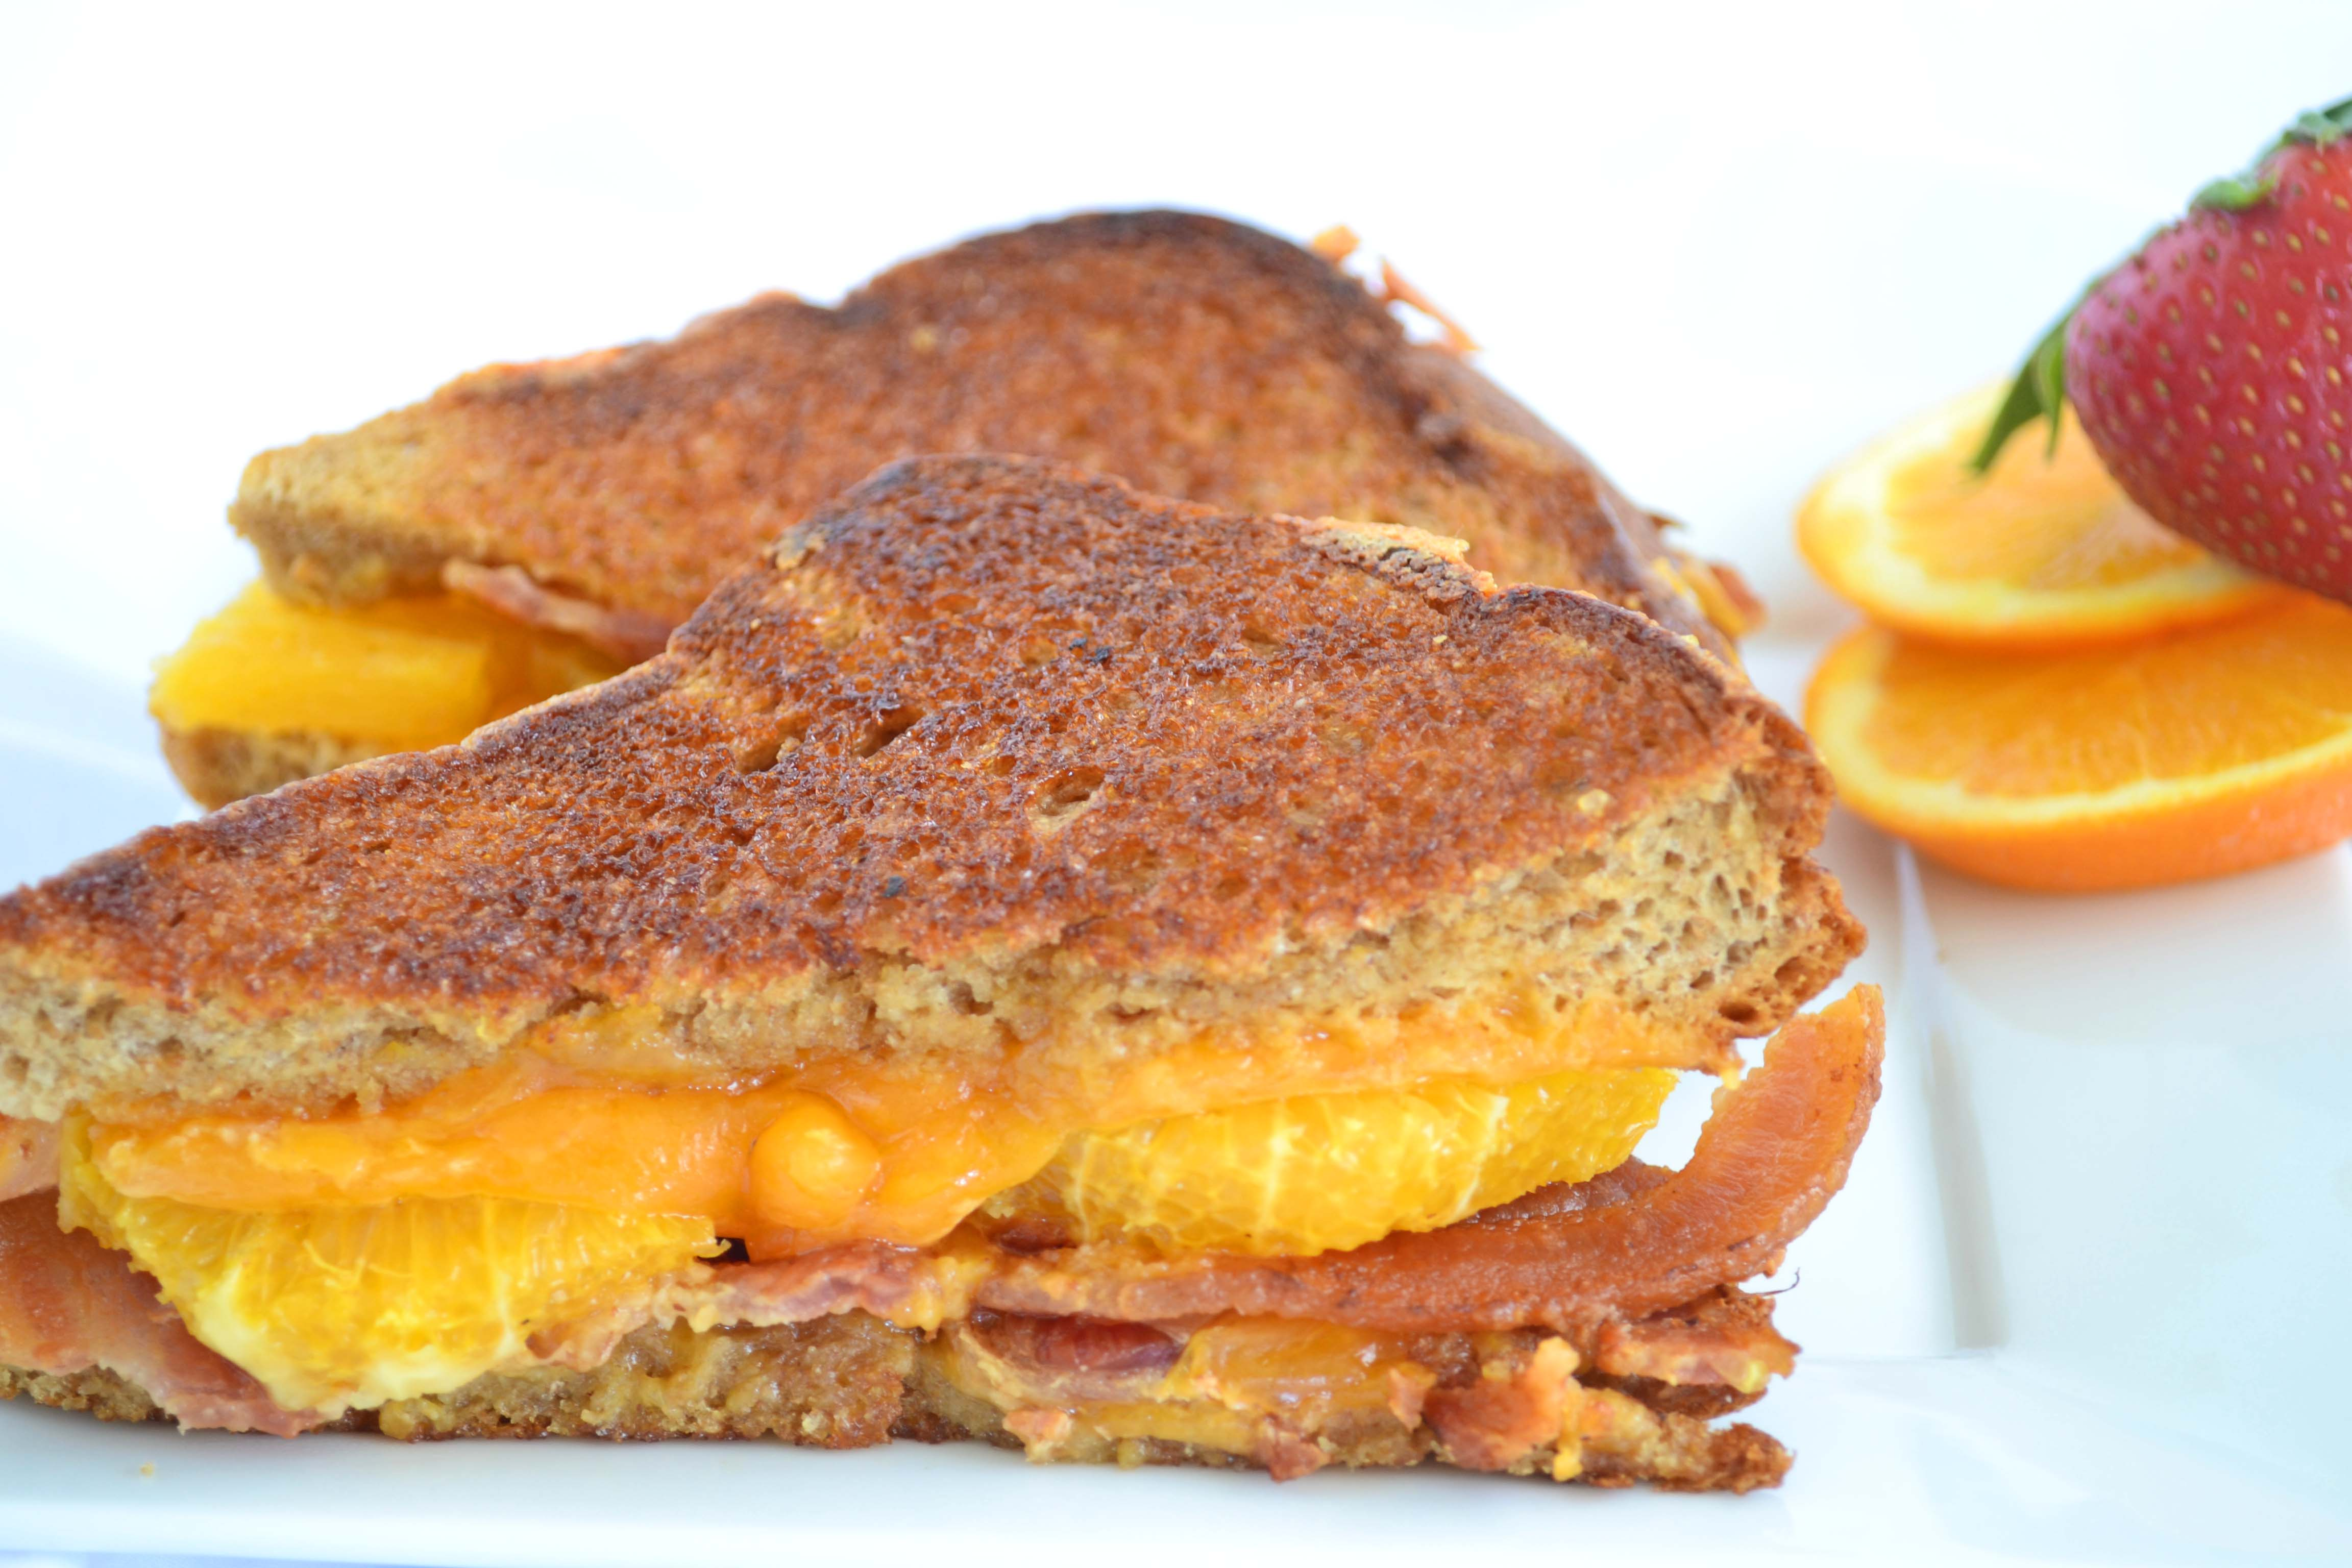 A riff on the grilled cheese sandwich. Does it count as a true grilled cheese?